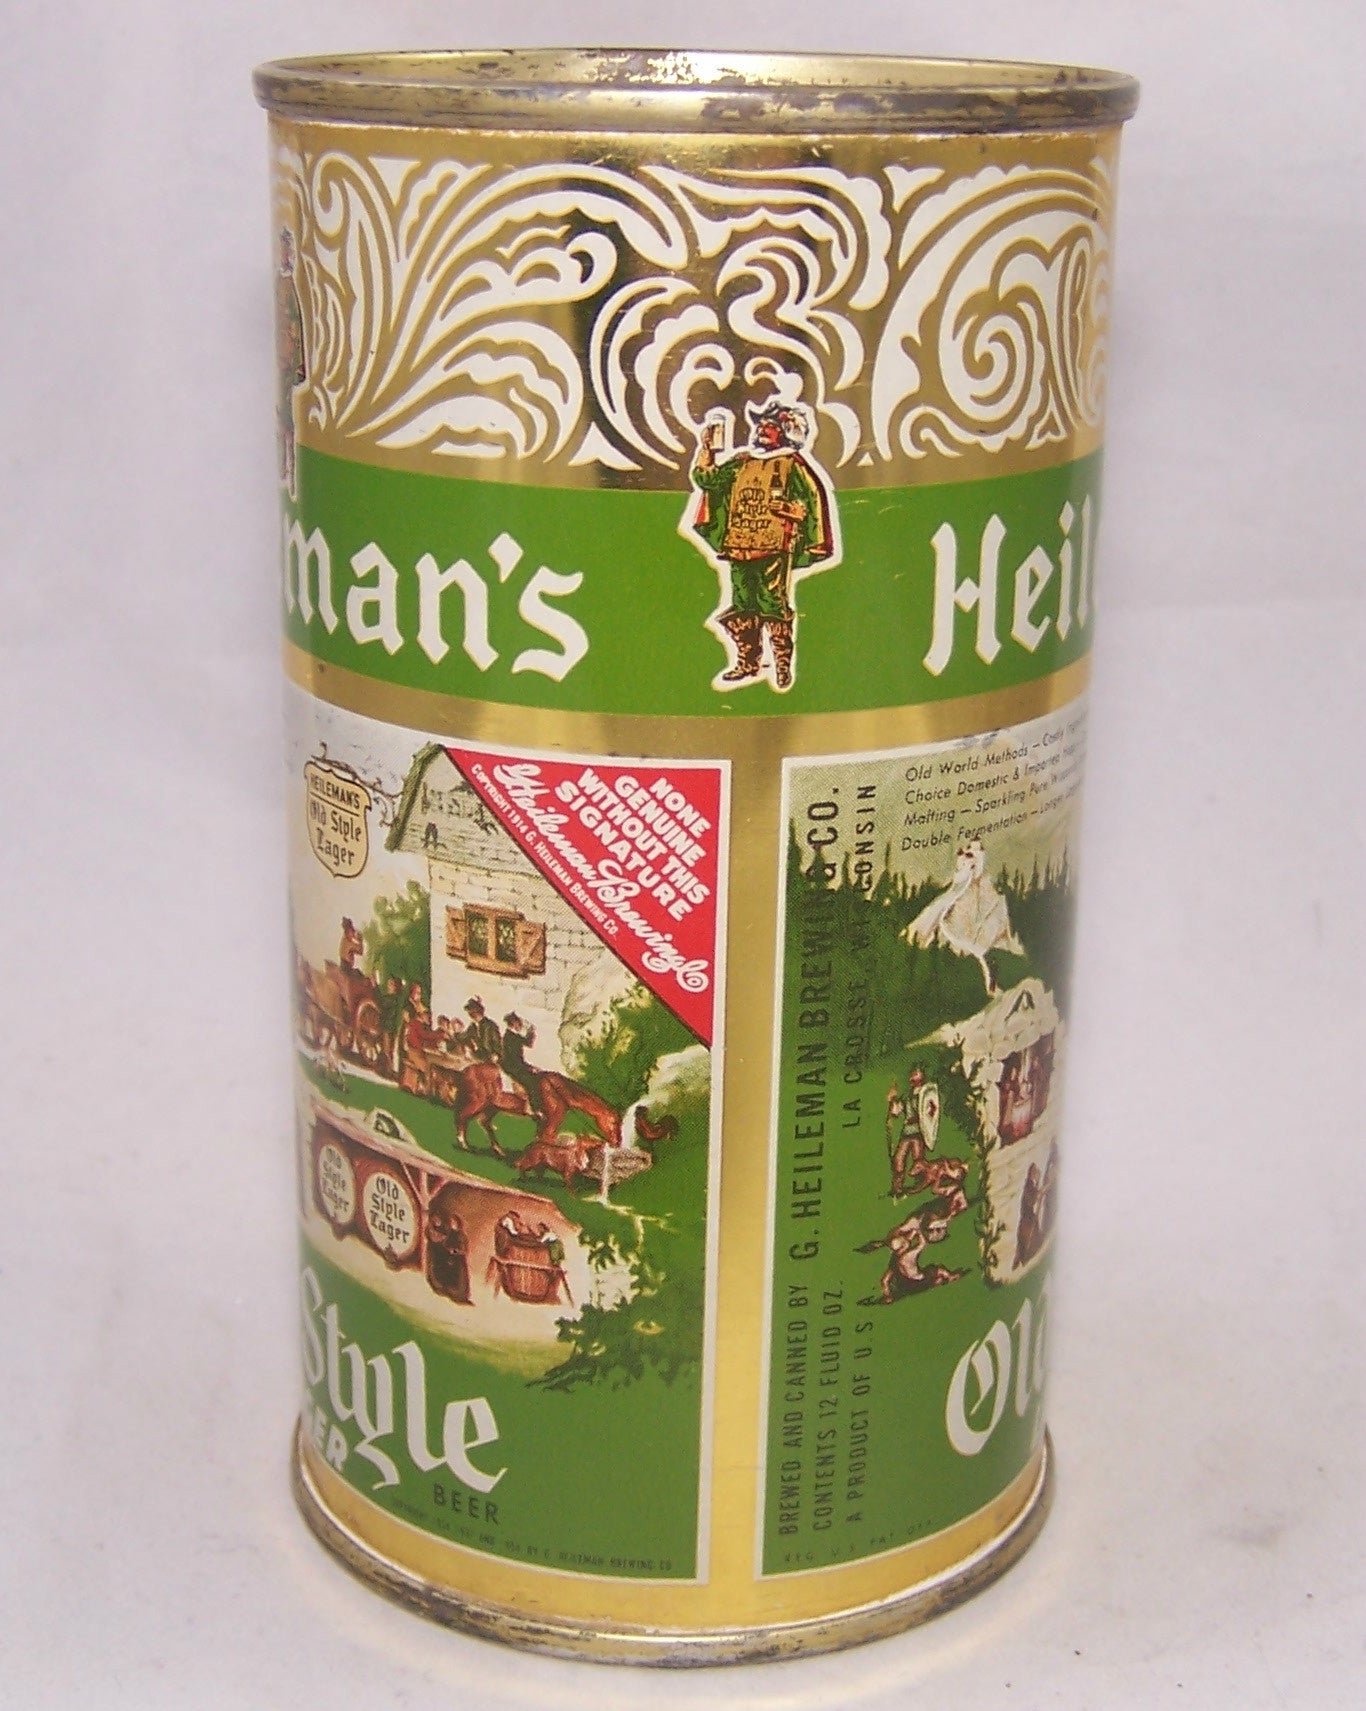 Heileman's Old Style Lager, USBC 108-14, Grade 1 or better  Sold on 12/26/16